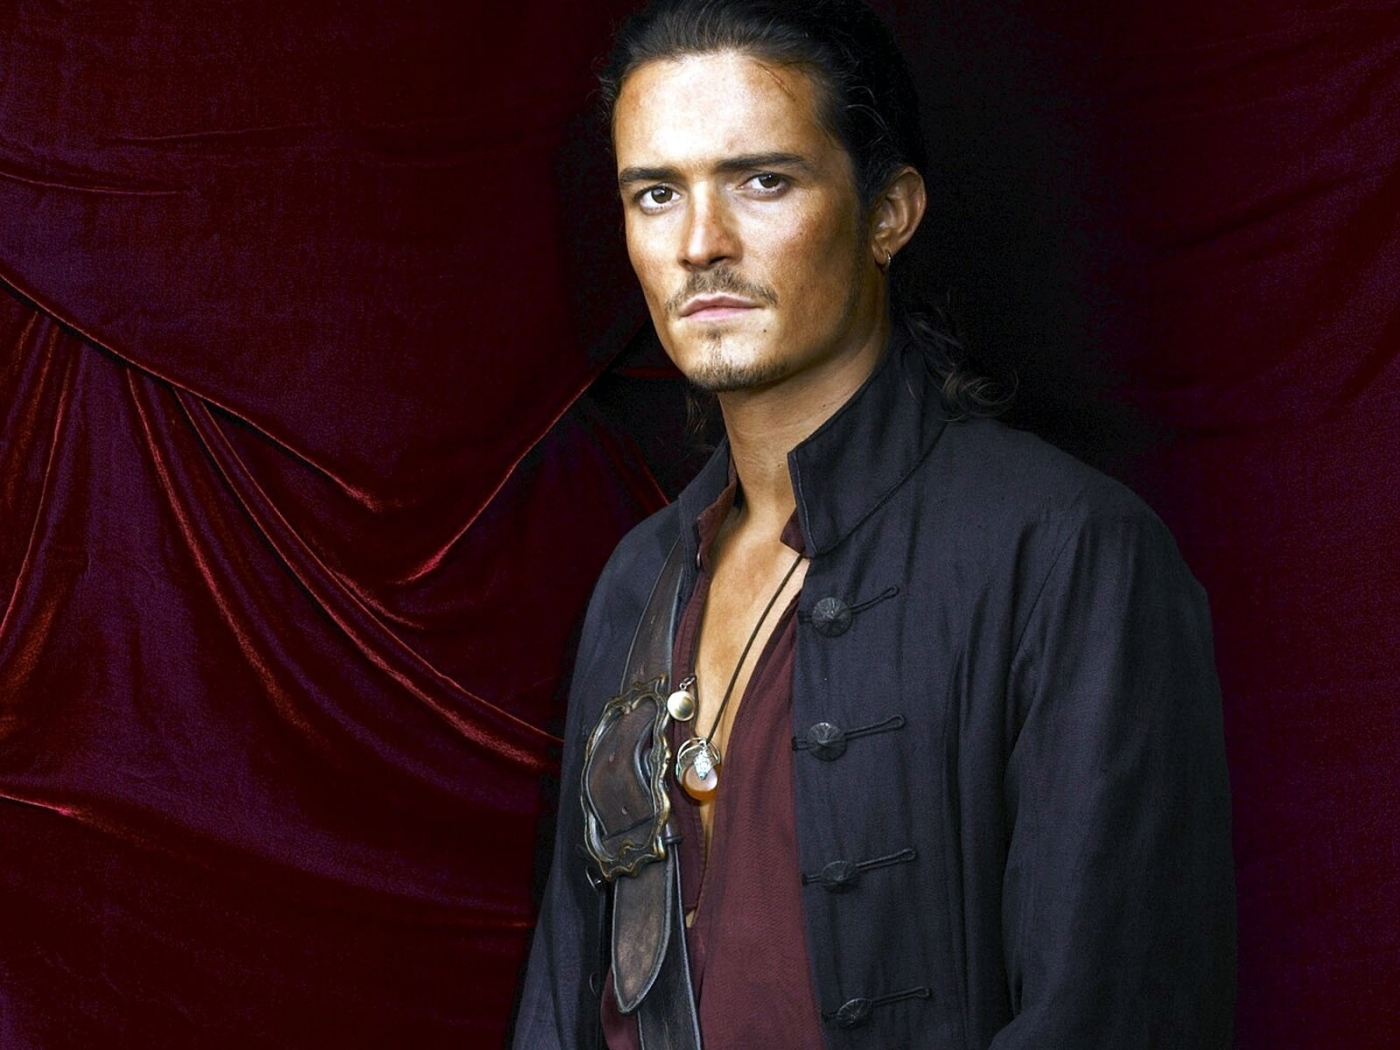 30495 download wallpaper Cinema, People, Actors, Men, Pirates Of The Caribbean, Orlando Bloom screensavers and pictures for free